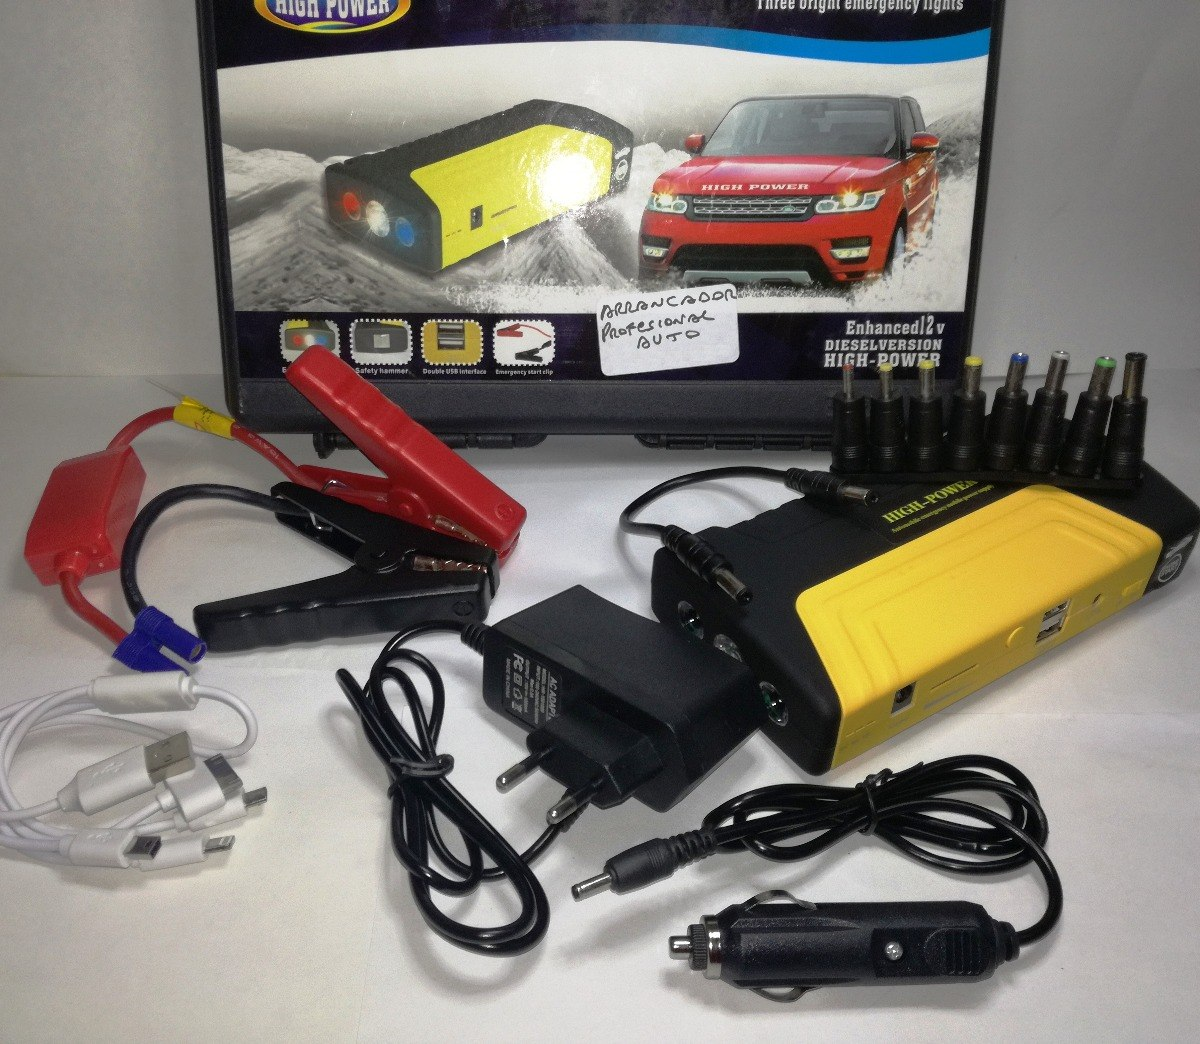 4b9f8a590 Arrancador Auto Cargador Bateria High Power - $ 4.500,00 en Mercado ...